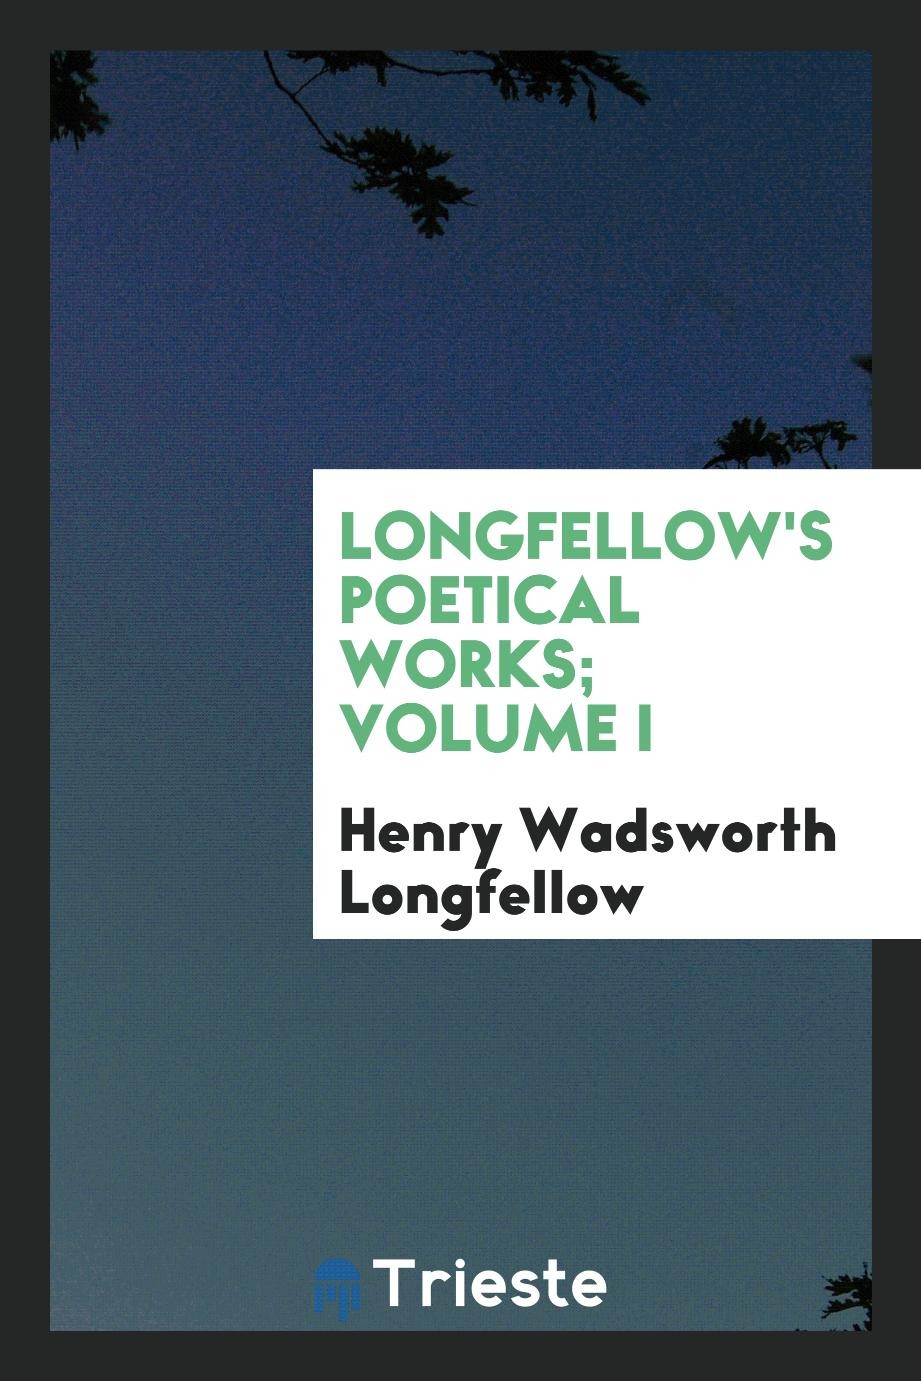 Longfellow's poetical works; Volume I